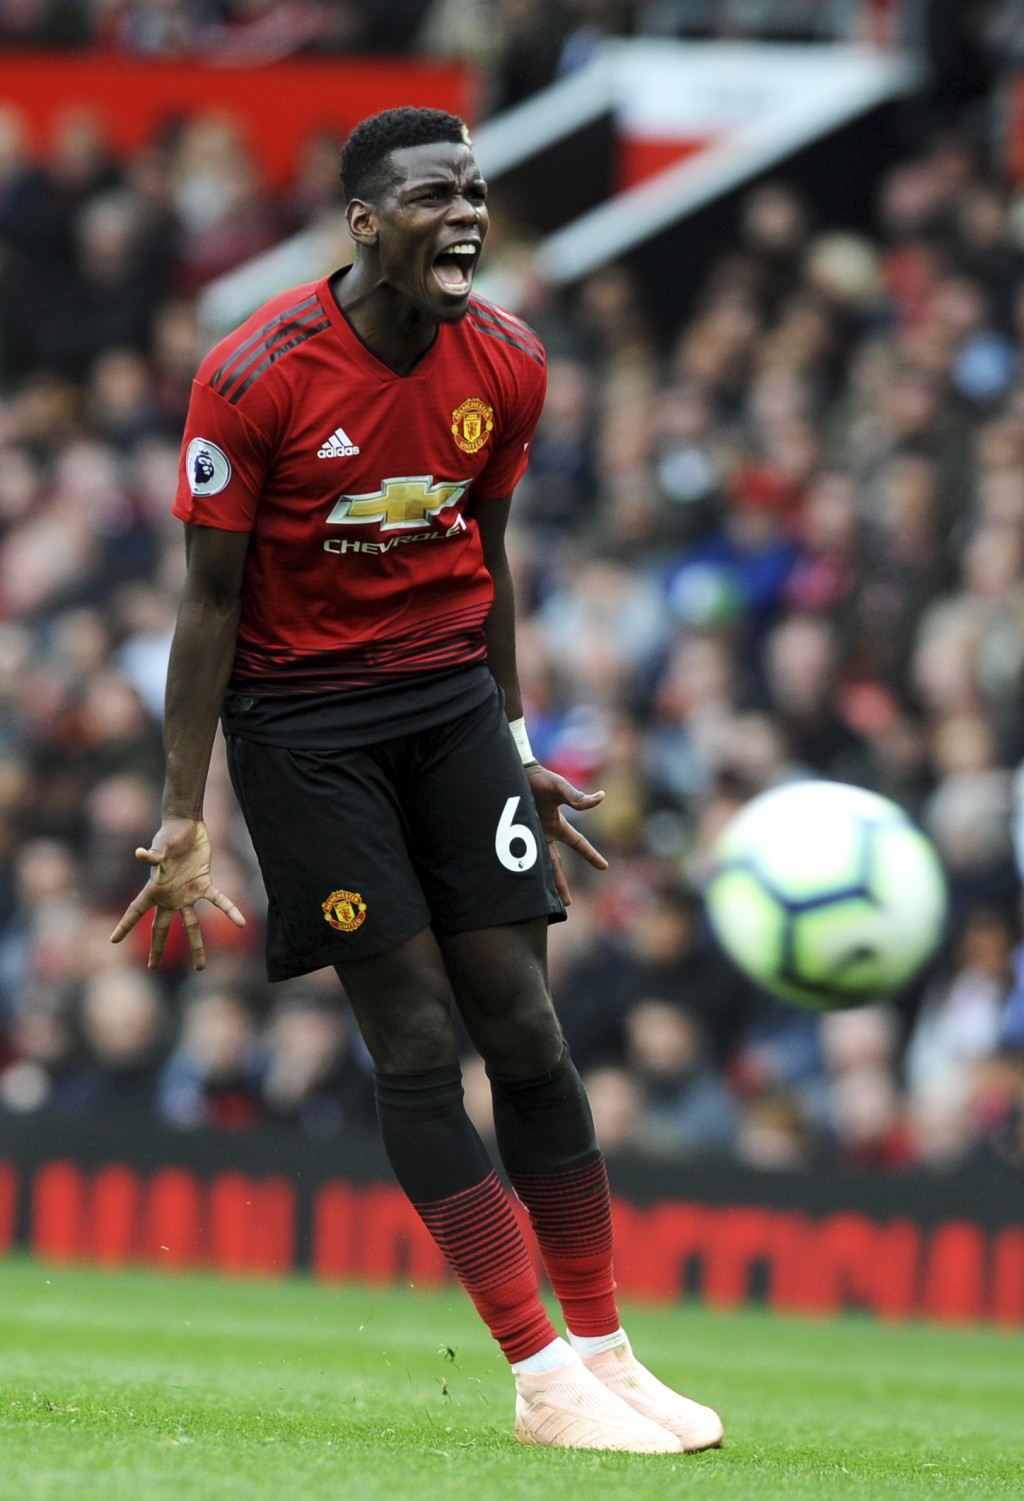 Manchester United's Paul Pogba reacts during the English Premier League soccer match between Manchester United and Wolverhampton Wanderers at Old Traf...